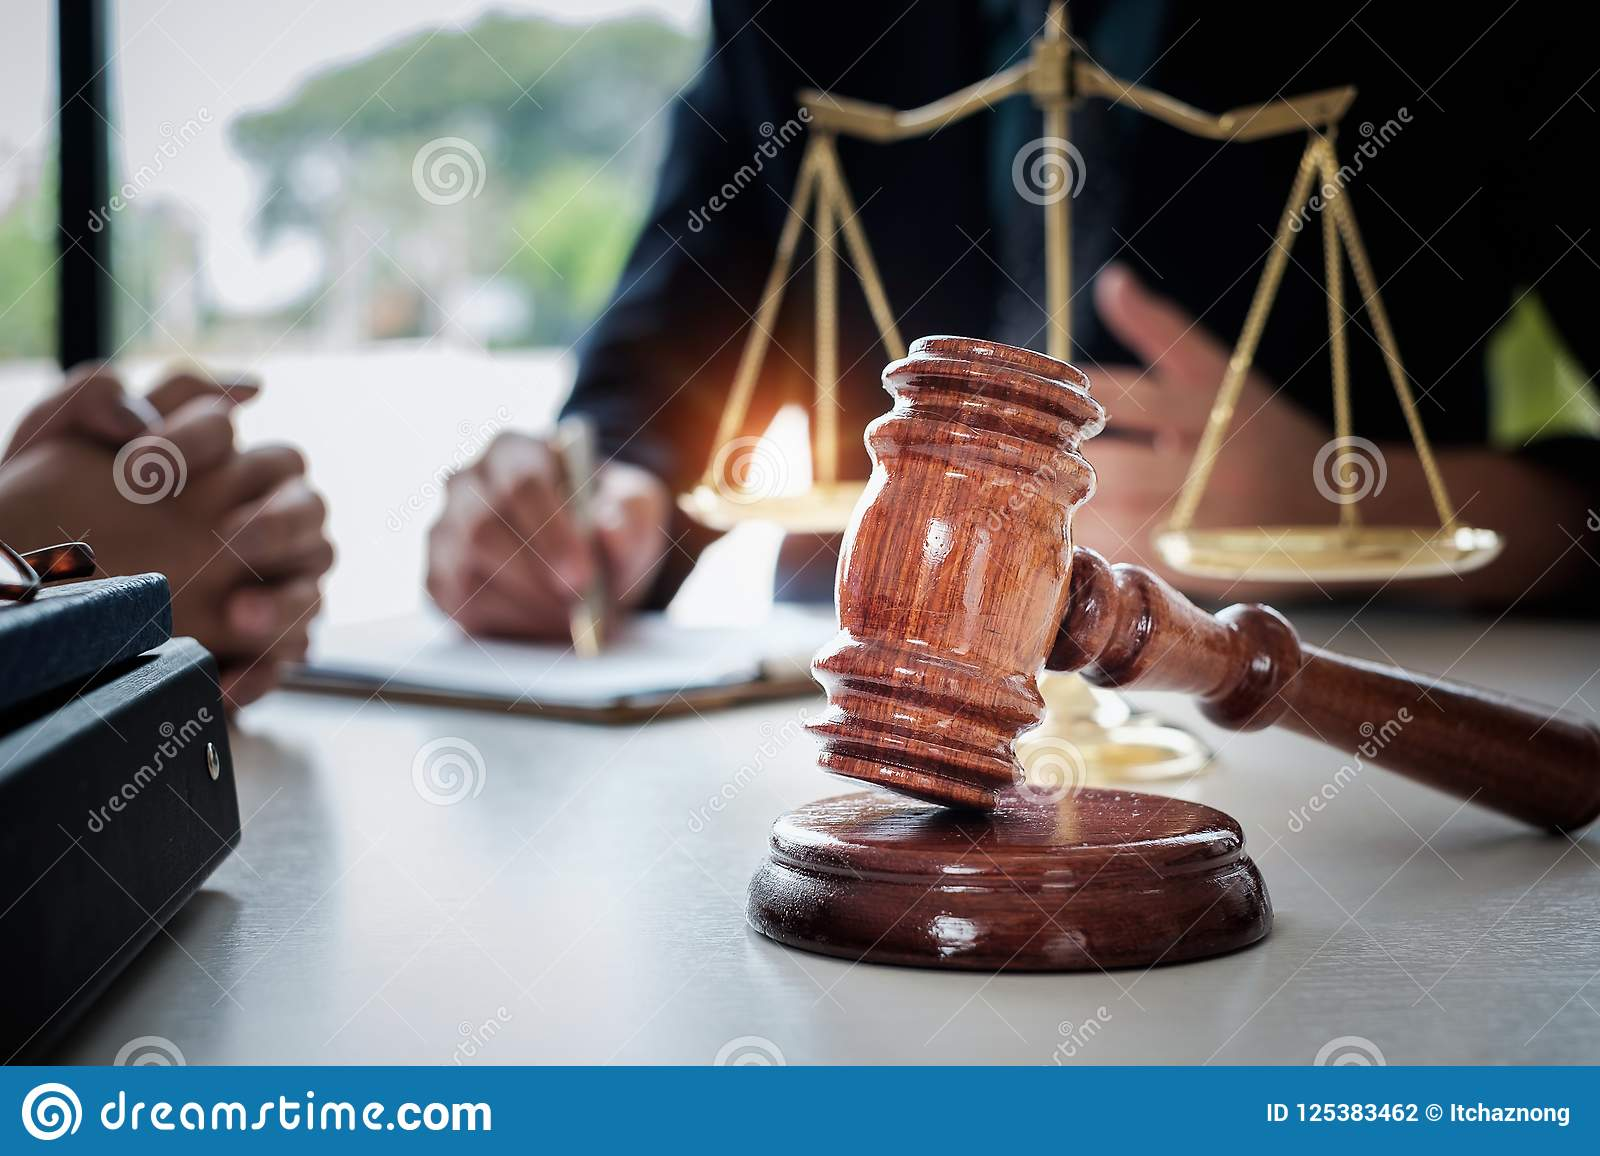 Business woman and lawyers discussing contract papers with brass scale on wooden desk in office. Law, legal services, advice, Just